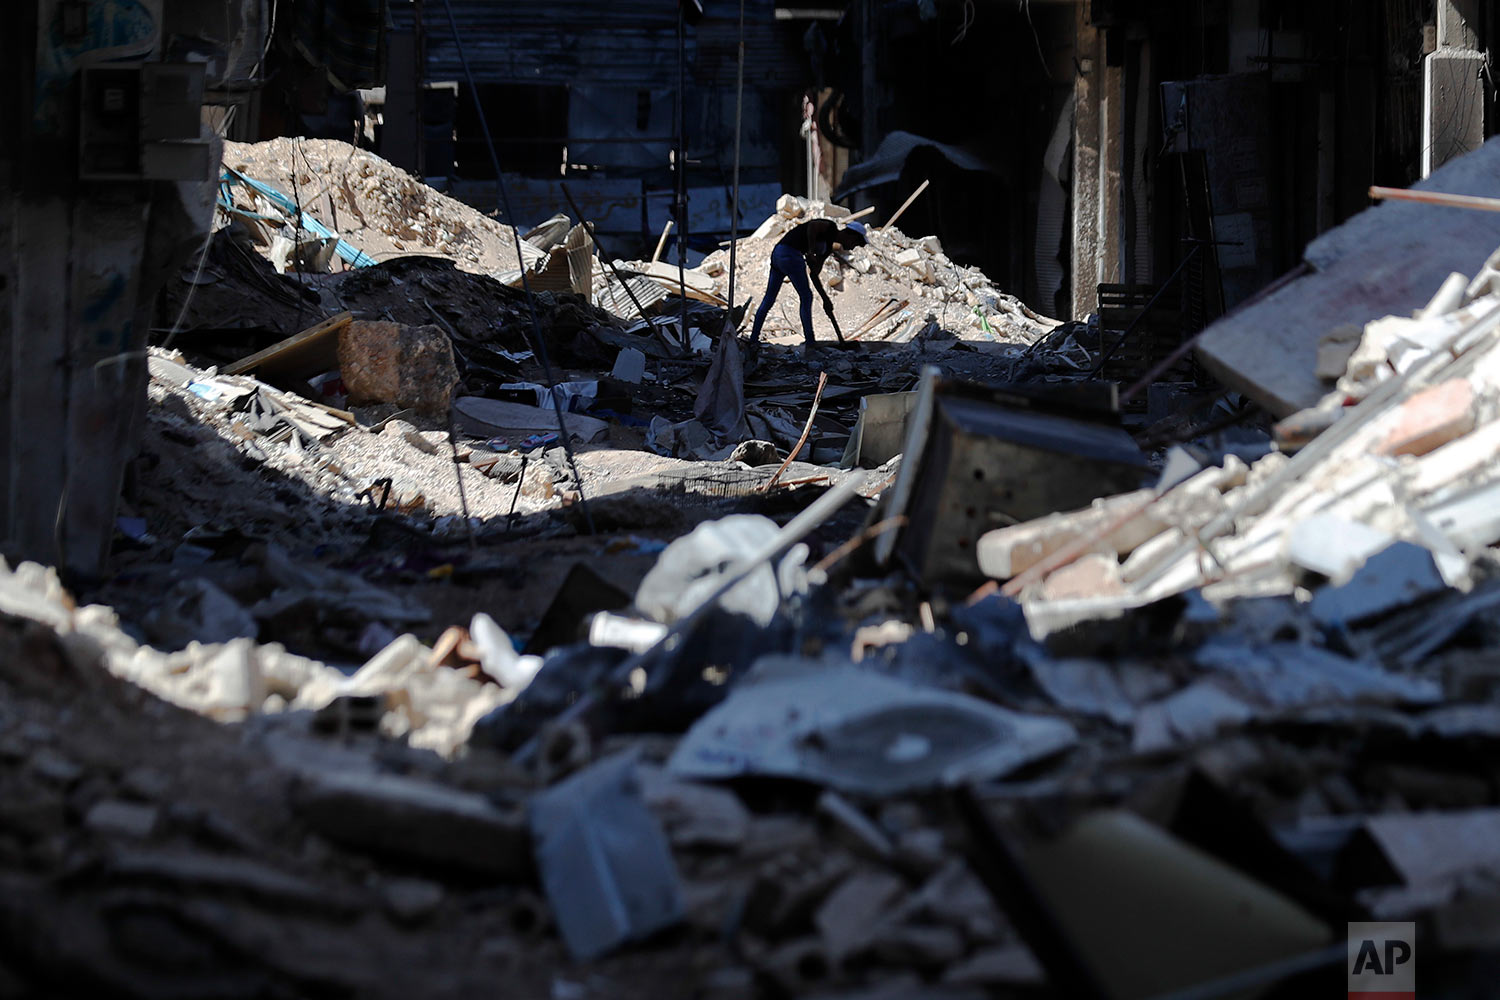 A young man removes rubble in front of his shop in the Palestinian refugee camp of Yarmouk in the Syrian capital Damascus, Syria, Monday, July 16, 2018. (AP Photo/Hassan Ammar)